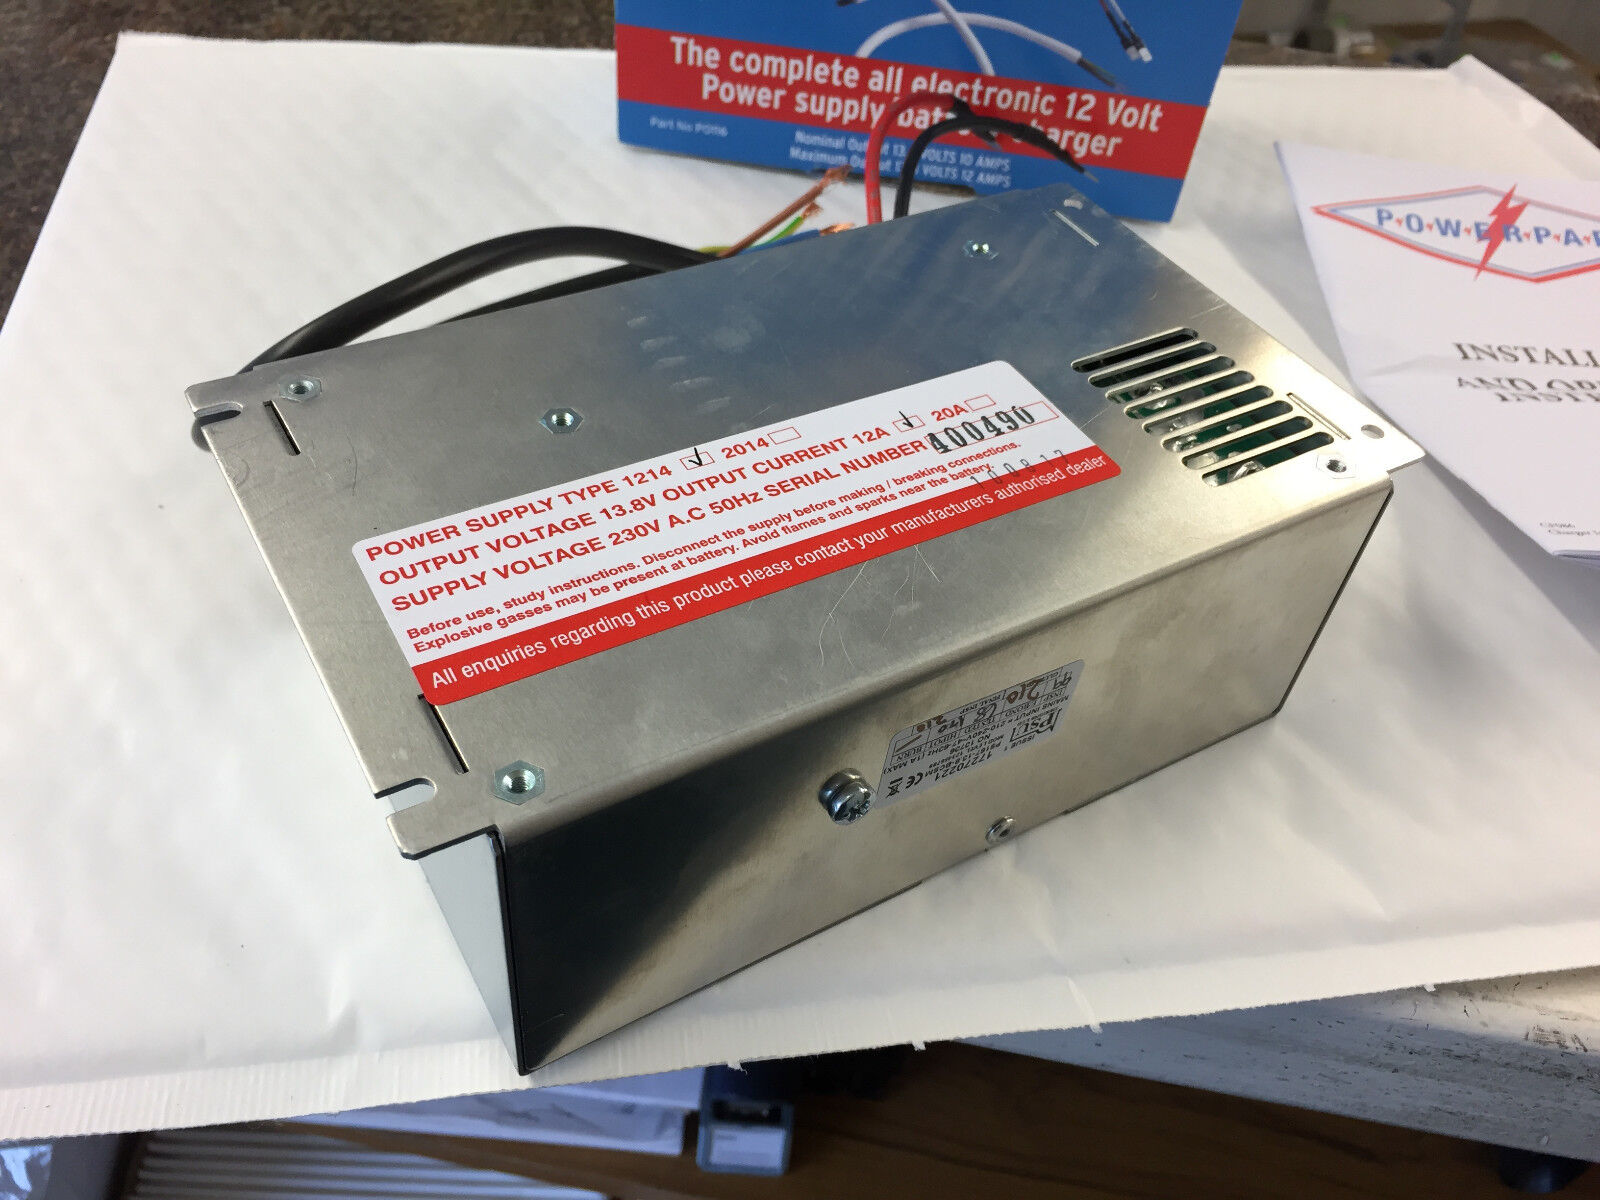 Caravan Motorhome 10 Amp 12v Power Supply Unit Battery Charger World Technical Dc With 138v And 20a Norton Secured Powered By Verisign